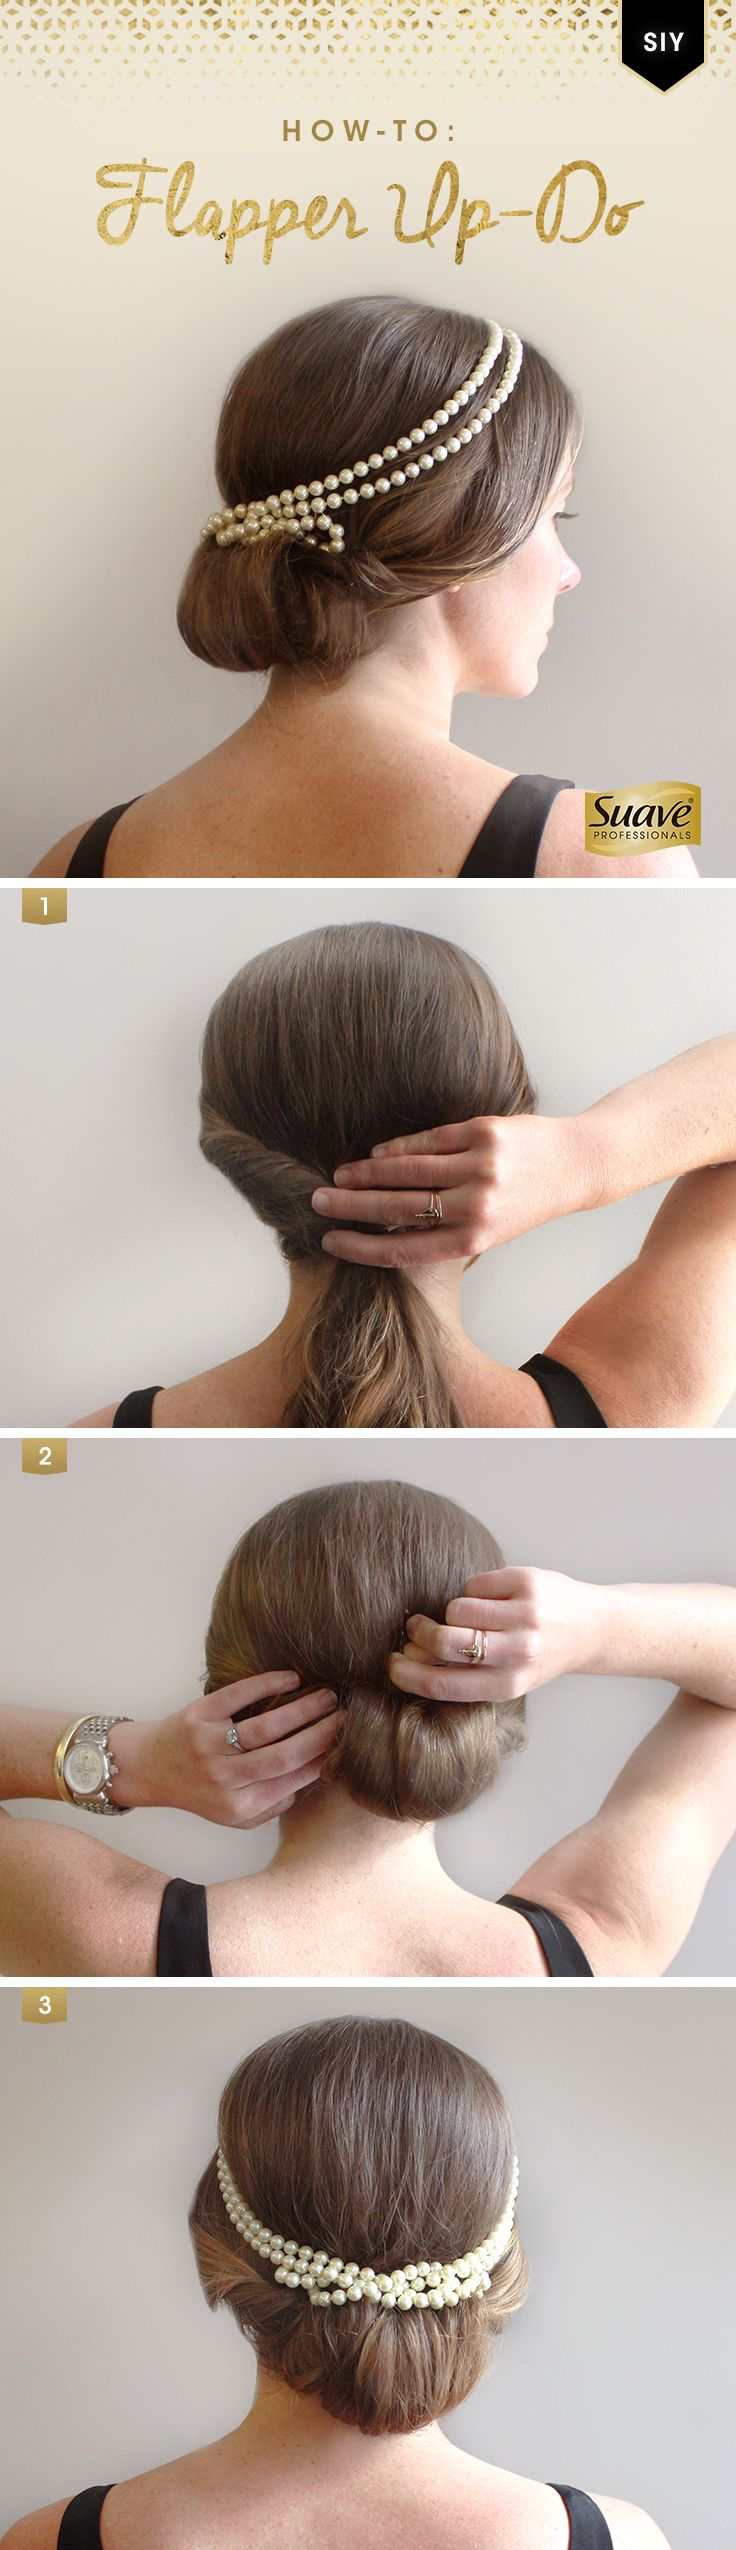 Style It Yourself with an easy, classic up-do for a summer wedding. Start with Suave Professionals Sea Mineral Infusion Moisturizing Buoyant Body Shampoo and Conditioner for body and bounce. Step 1: Twist the hair inward on each side and gather into a ponytail. Step 2: Divide it into manageable sections, looping each one around 2 fingers. Tuck the looped sections back inside the hair tie and secure with bobby pins. Step 3: Drape the pearl necklace on the head and use pins to keep it in…